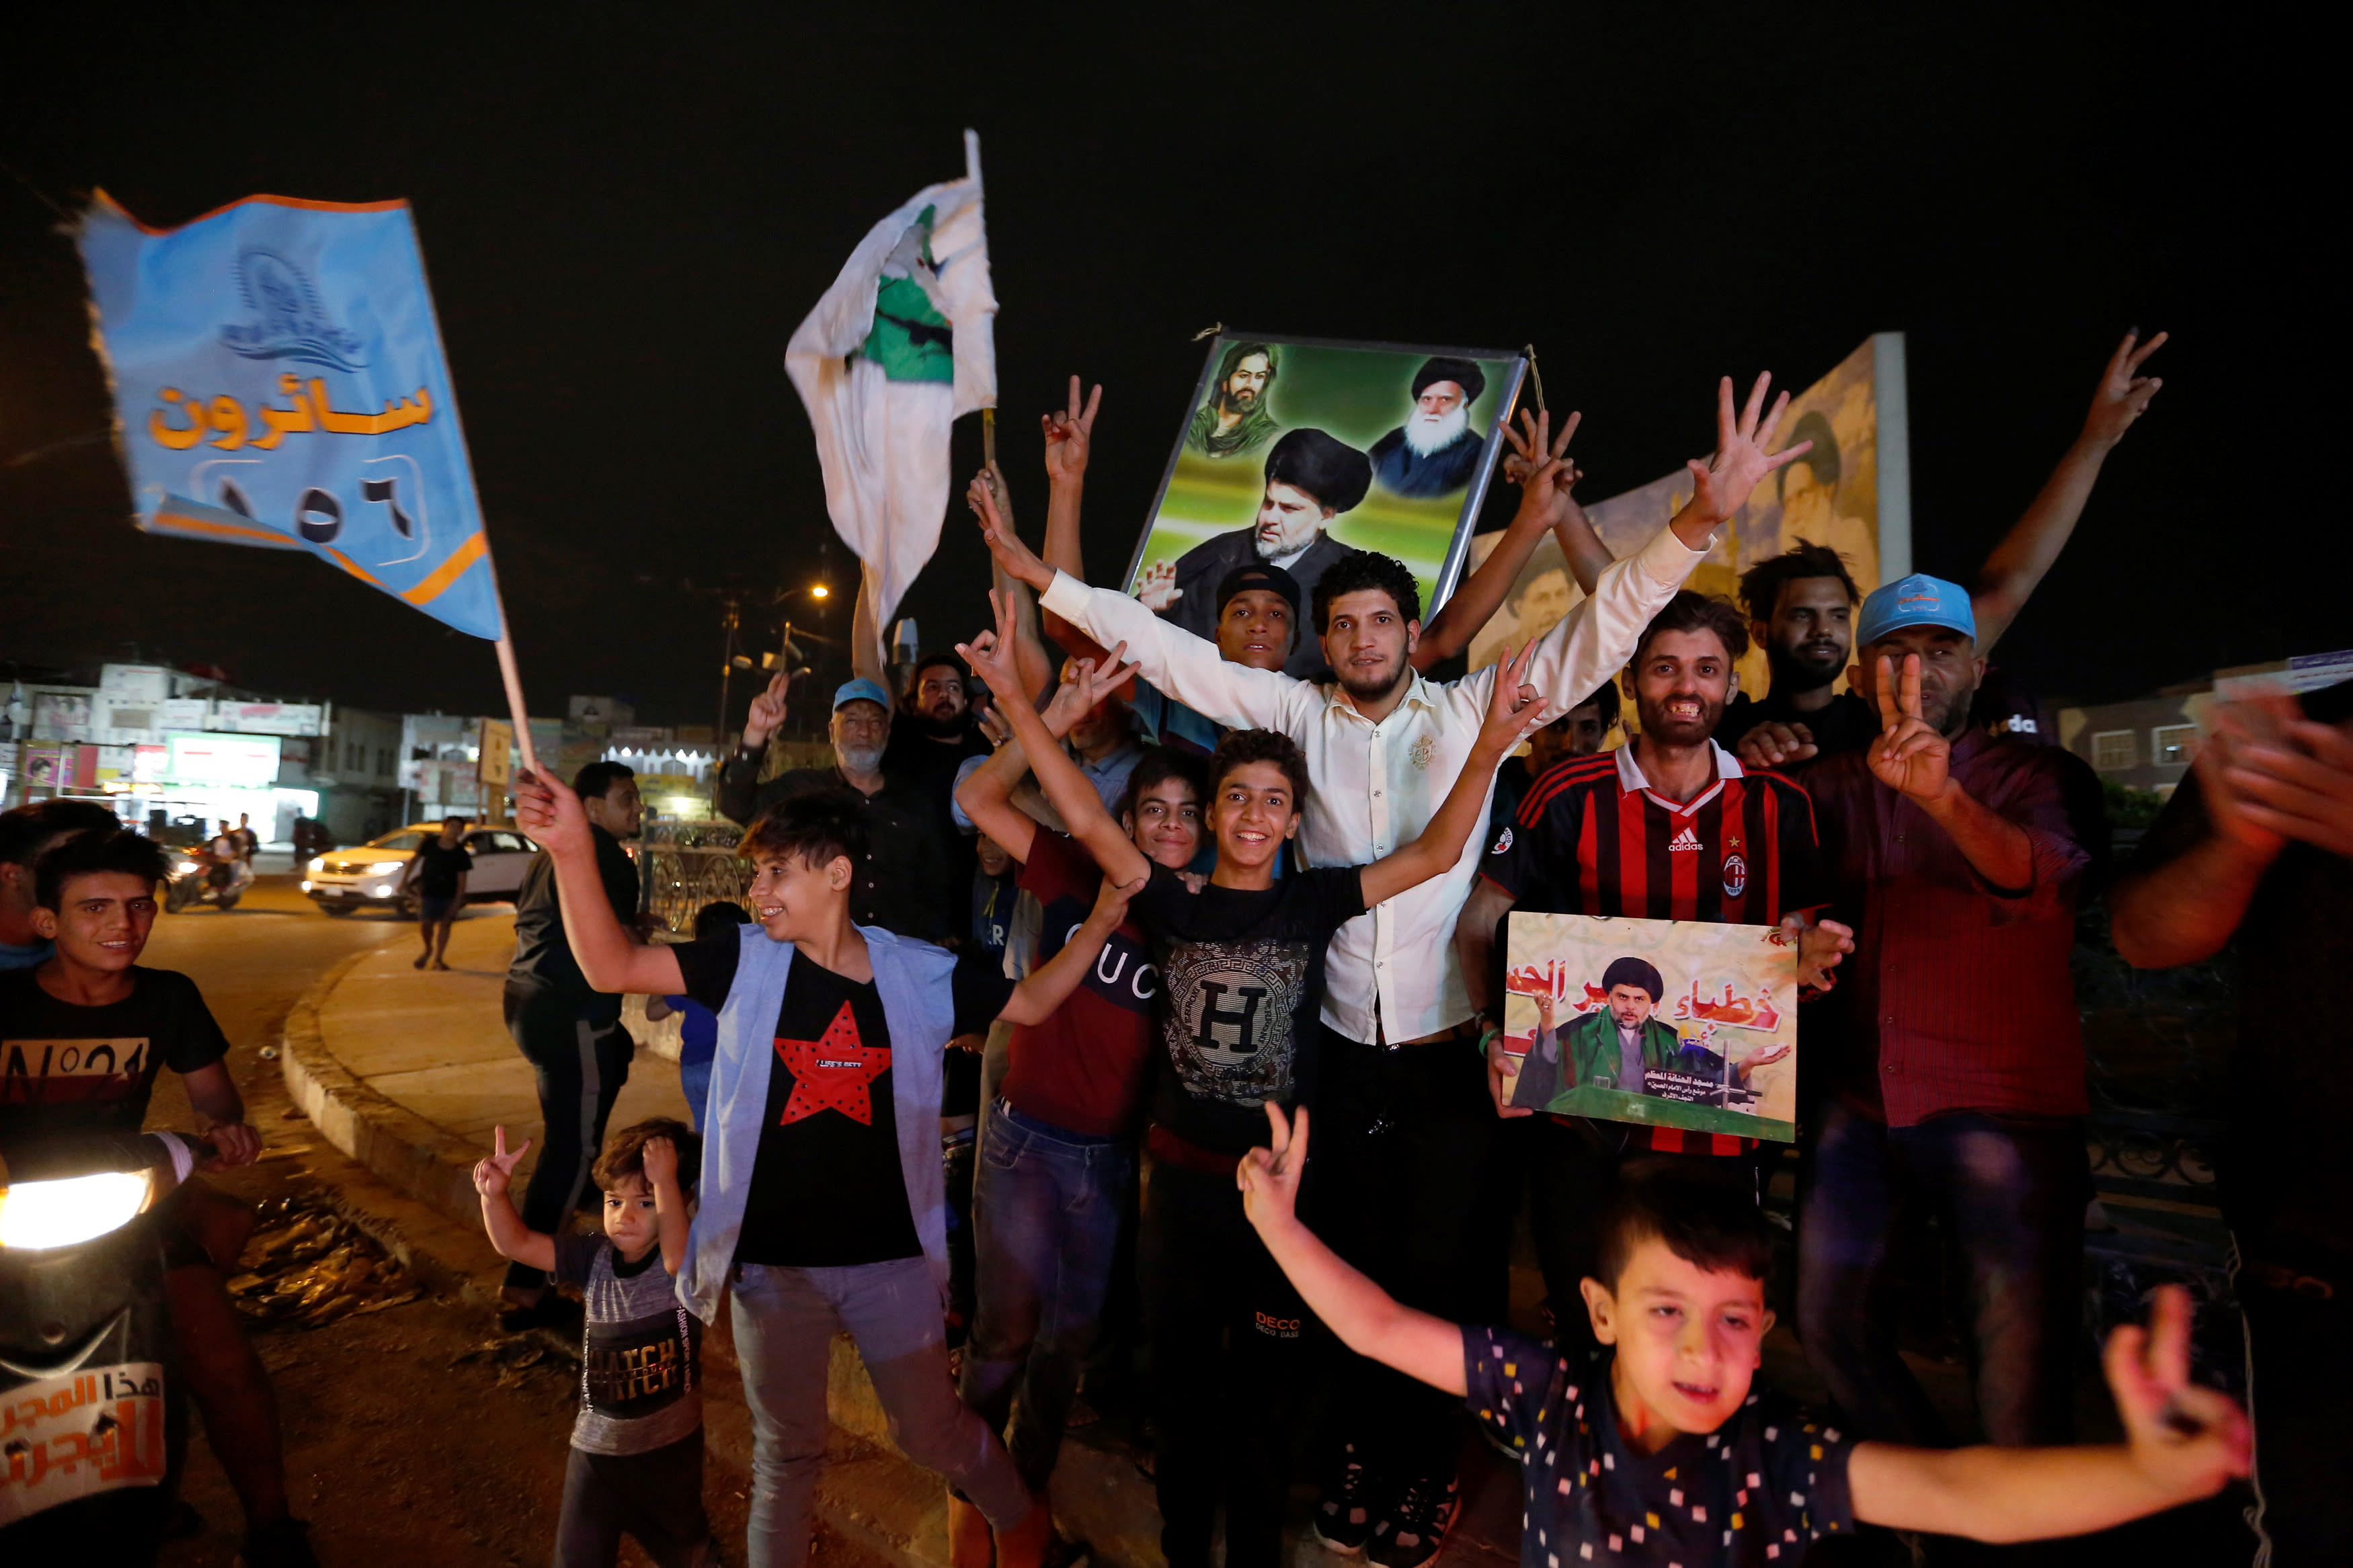 Iraqi supporters of Sairun list celebrate after the closing of ballot boxes during the parliamentary election in Sadr city district of Baghdad, Iraq May 12, 2018 (Reuters)